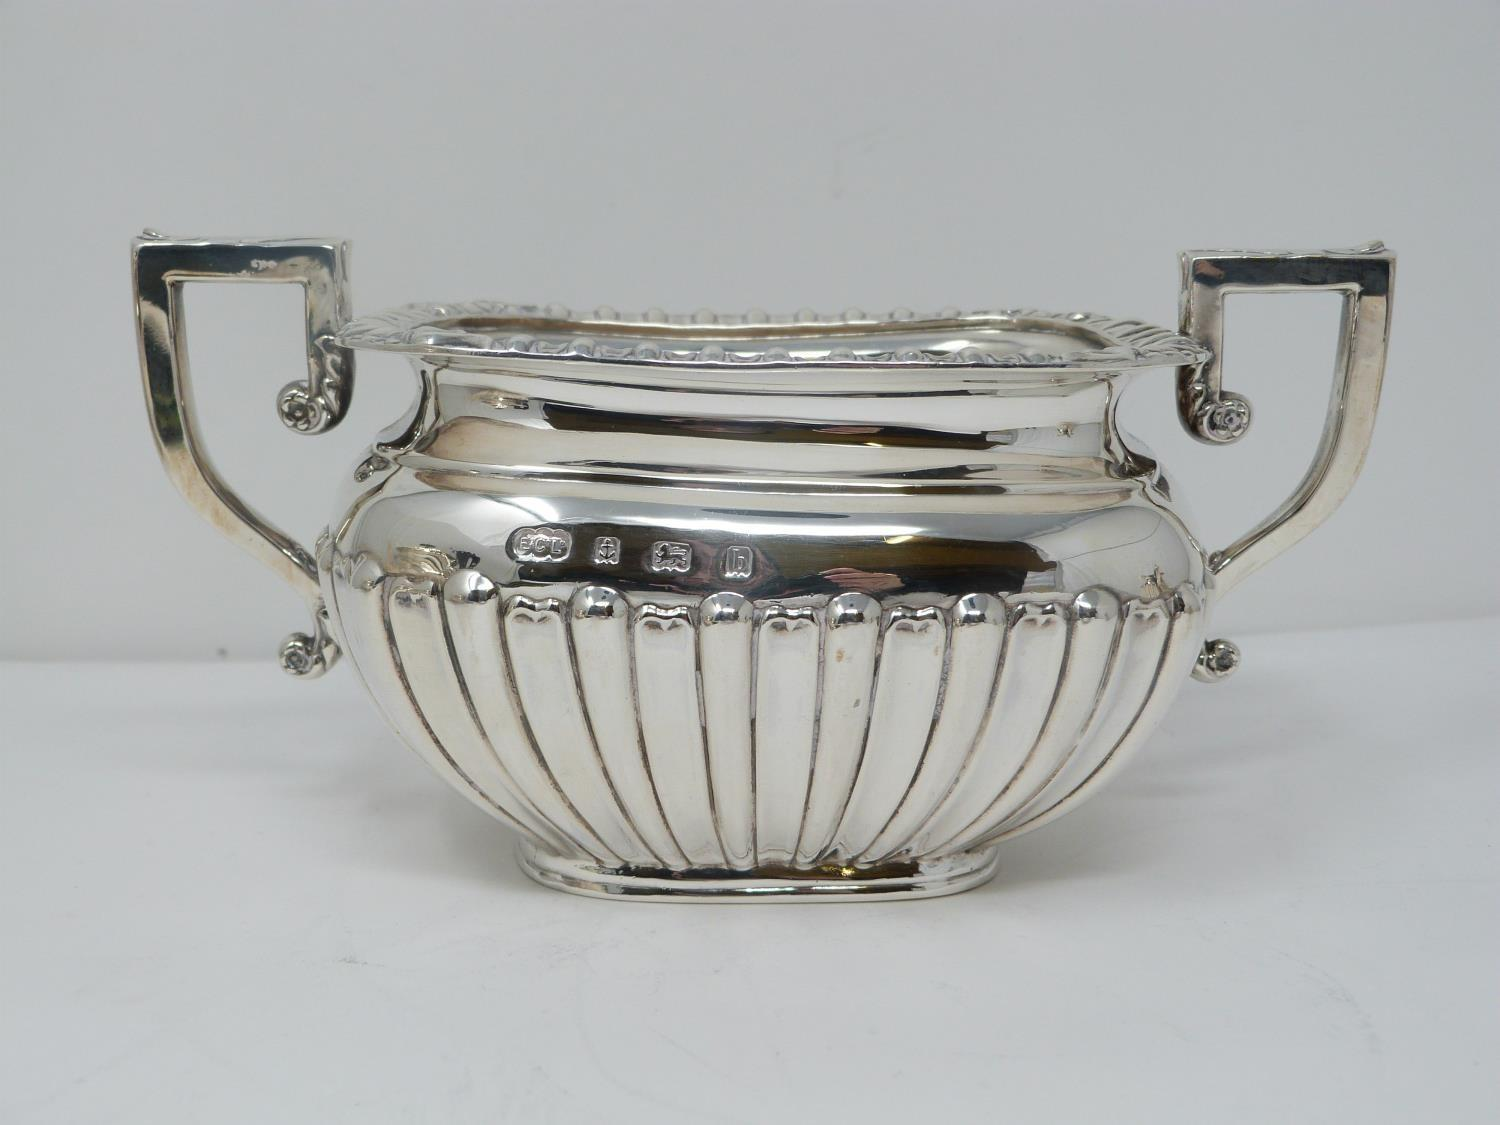 An Elkington and Co. silver three piece tea service, includes a teapot, sugar bowl and milk jug. - Image 7 of 12